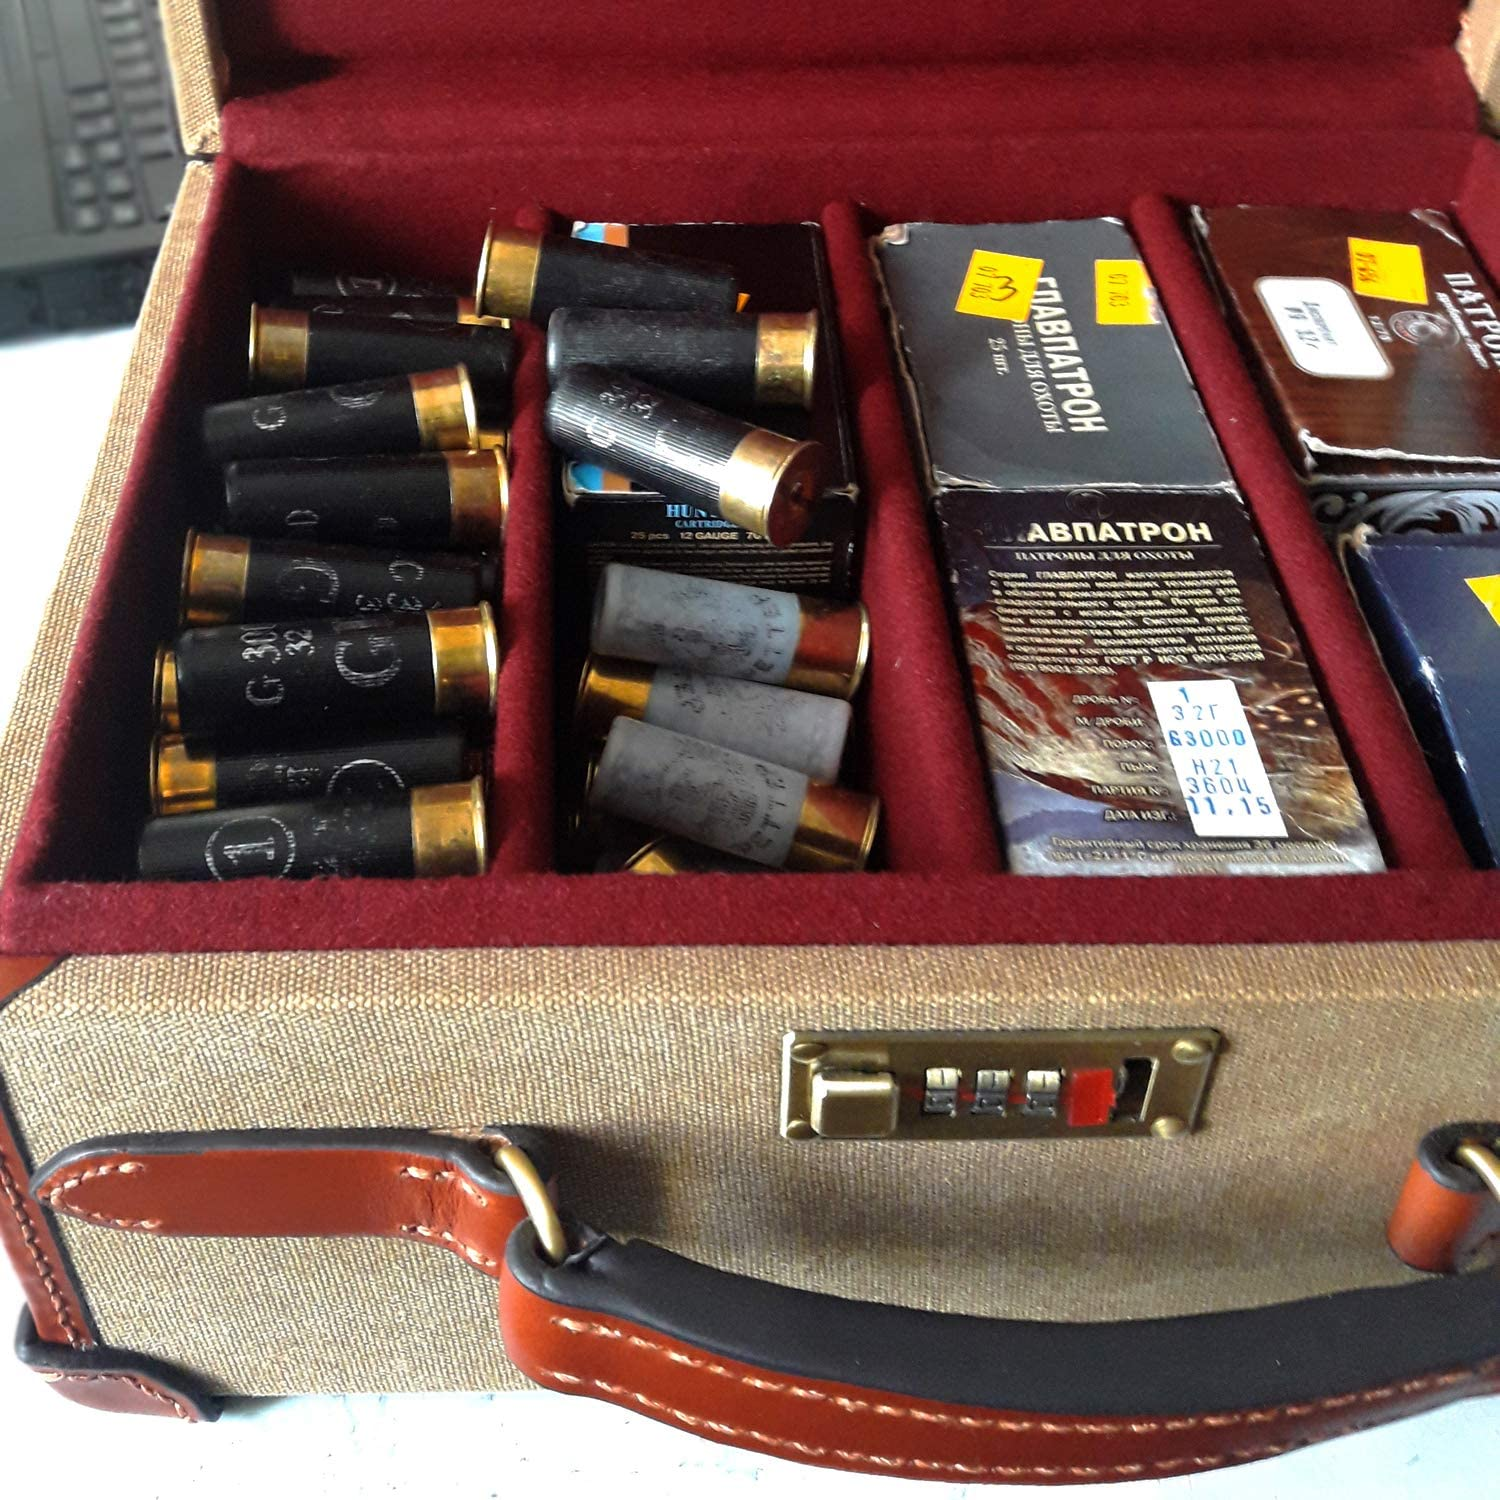 Tourbon Canvas and Leather Deluxe Shotshell Box Ammunition Carrier Ammo Storage Bullet Case - 200 Cartridges 71V1kJAwhrLSL1500_